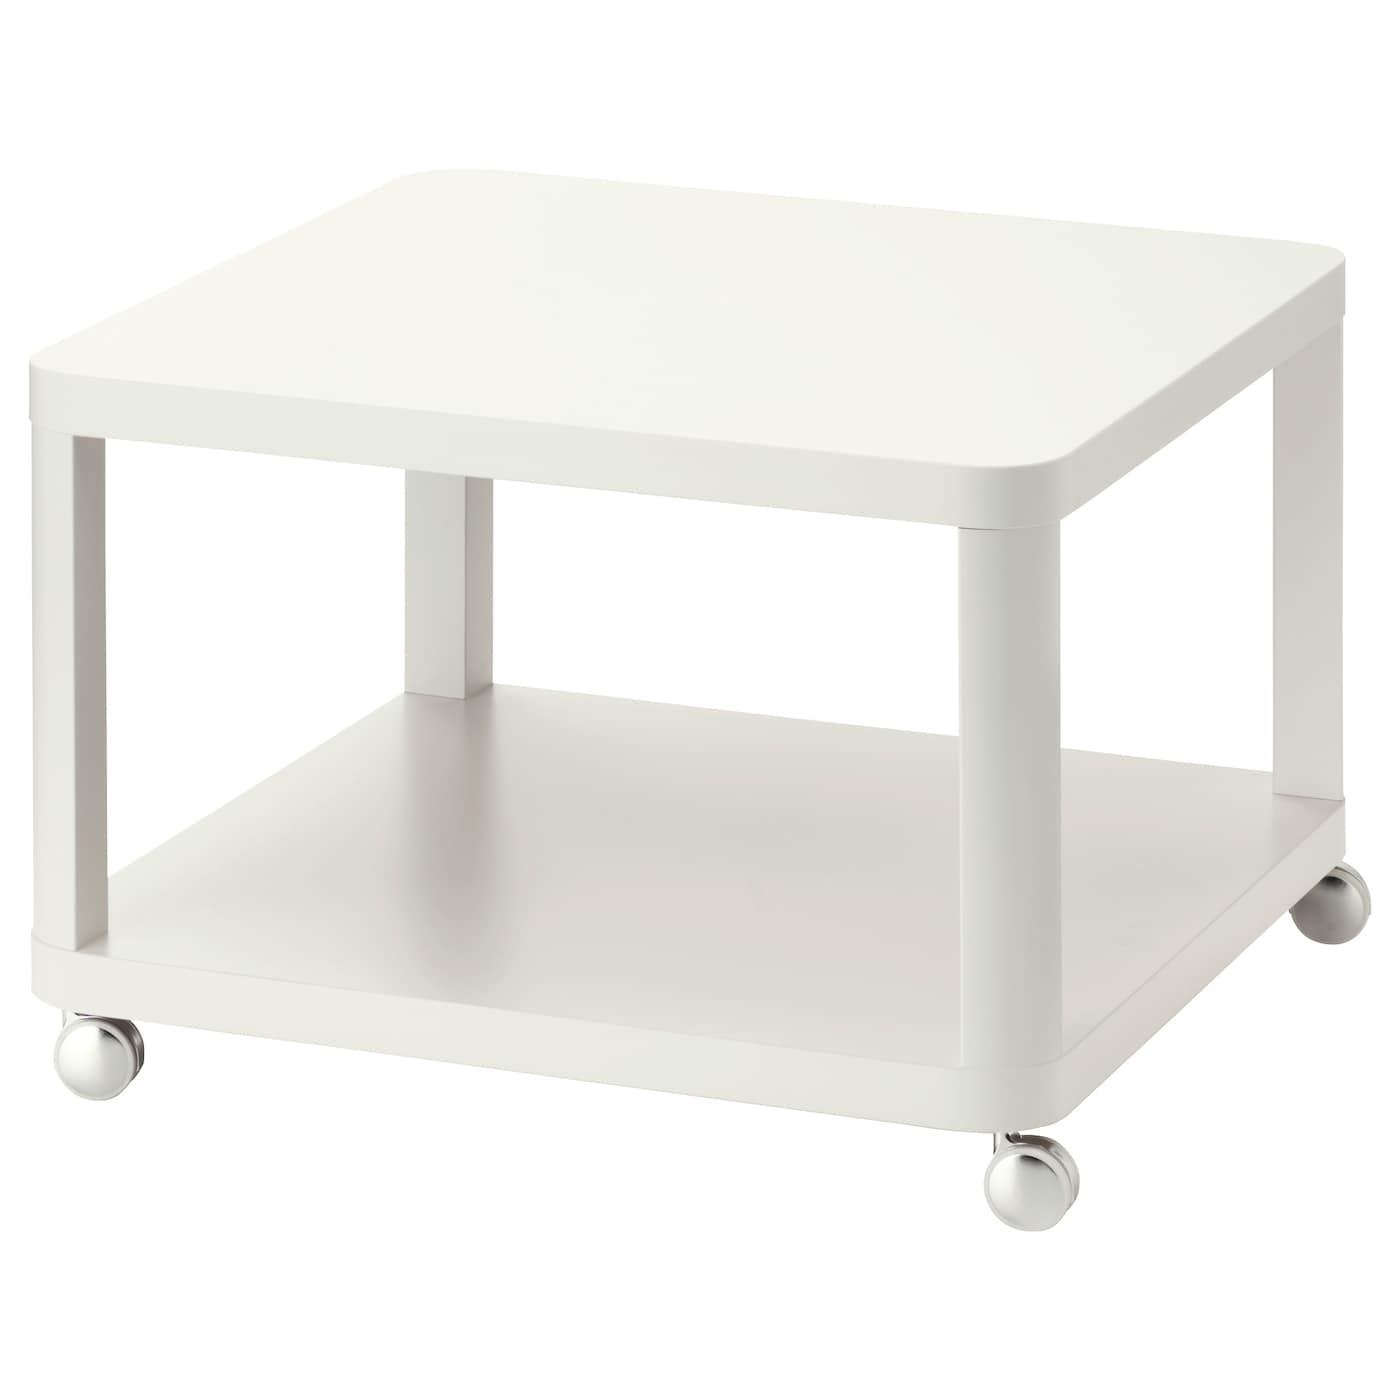 TINGBY Side table on castors White 64x64 cm IKEA